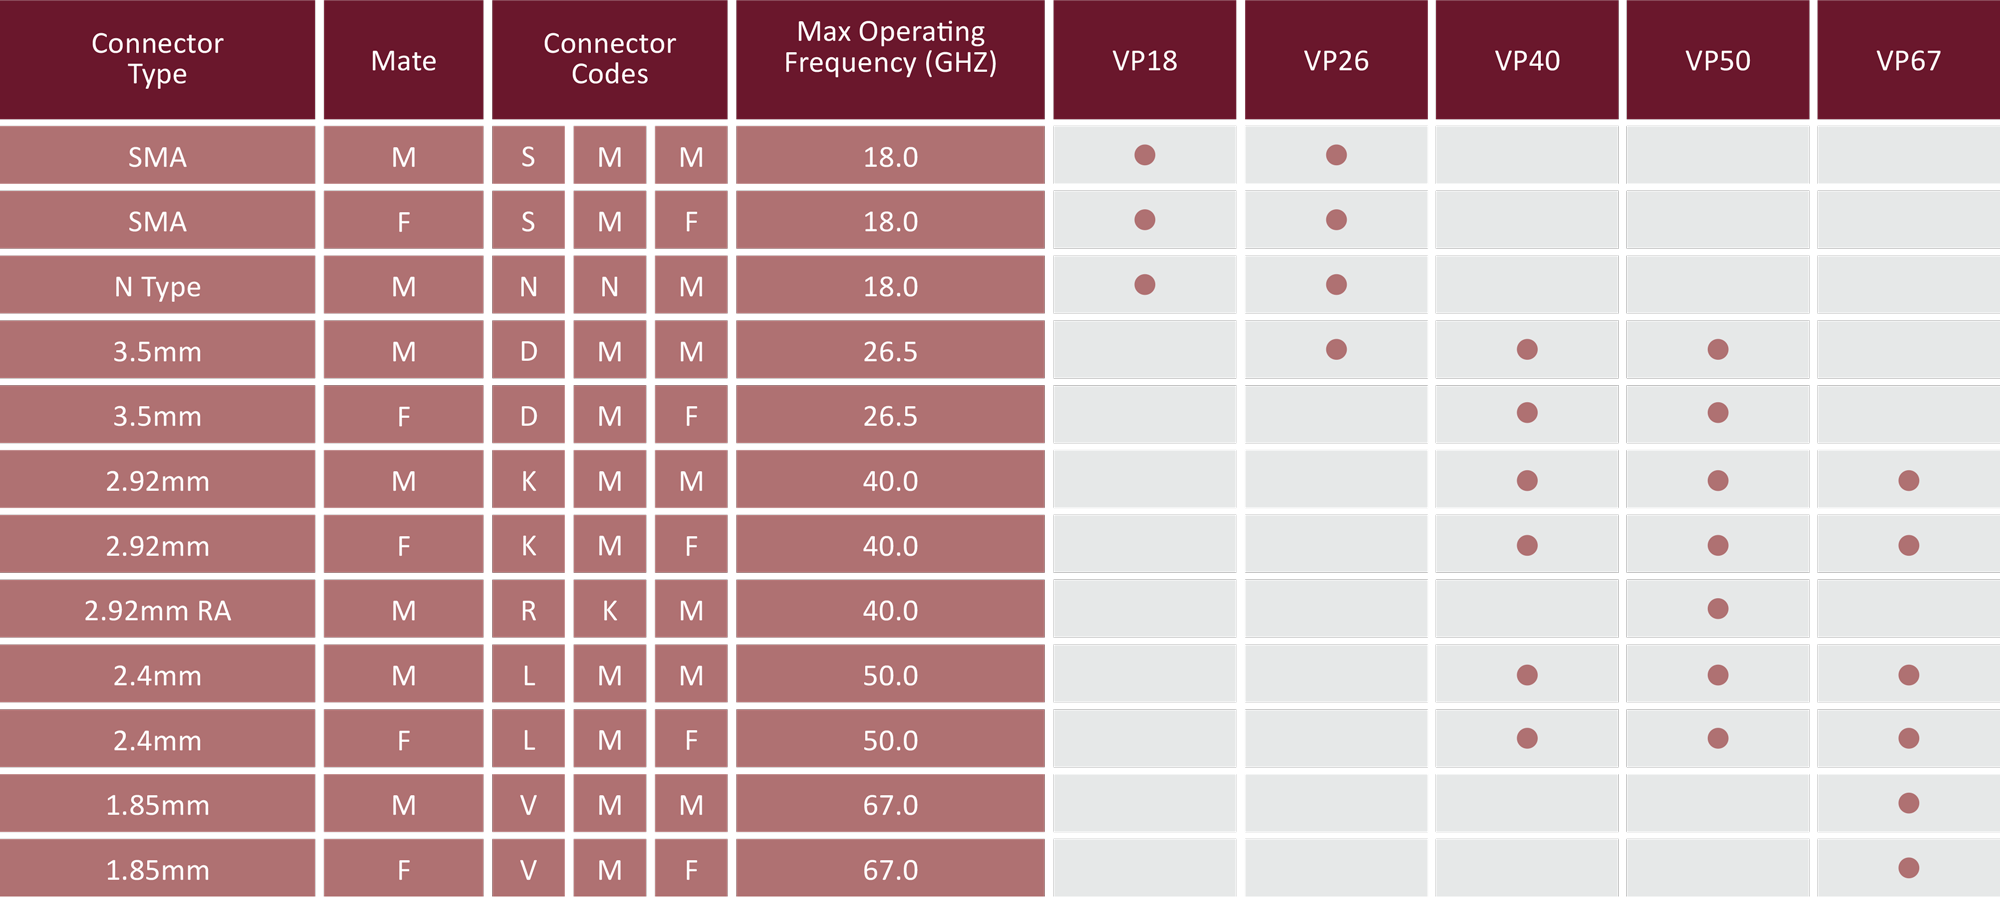 Continuum Technologies - Vero RF Cable Series - veroPHASE - Criteria for Connector Selection